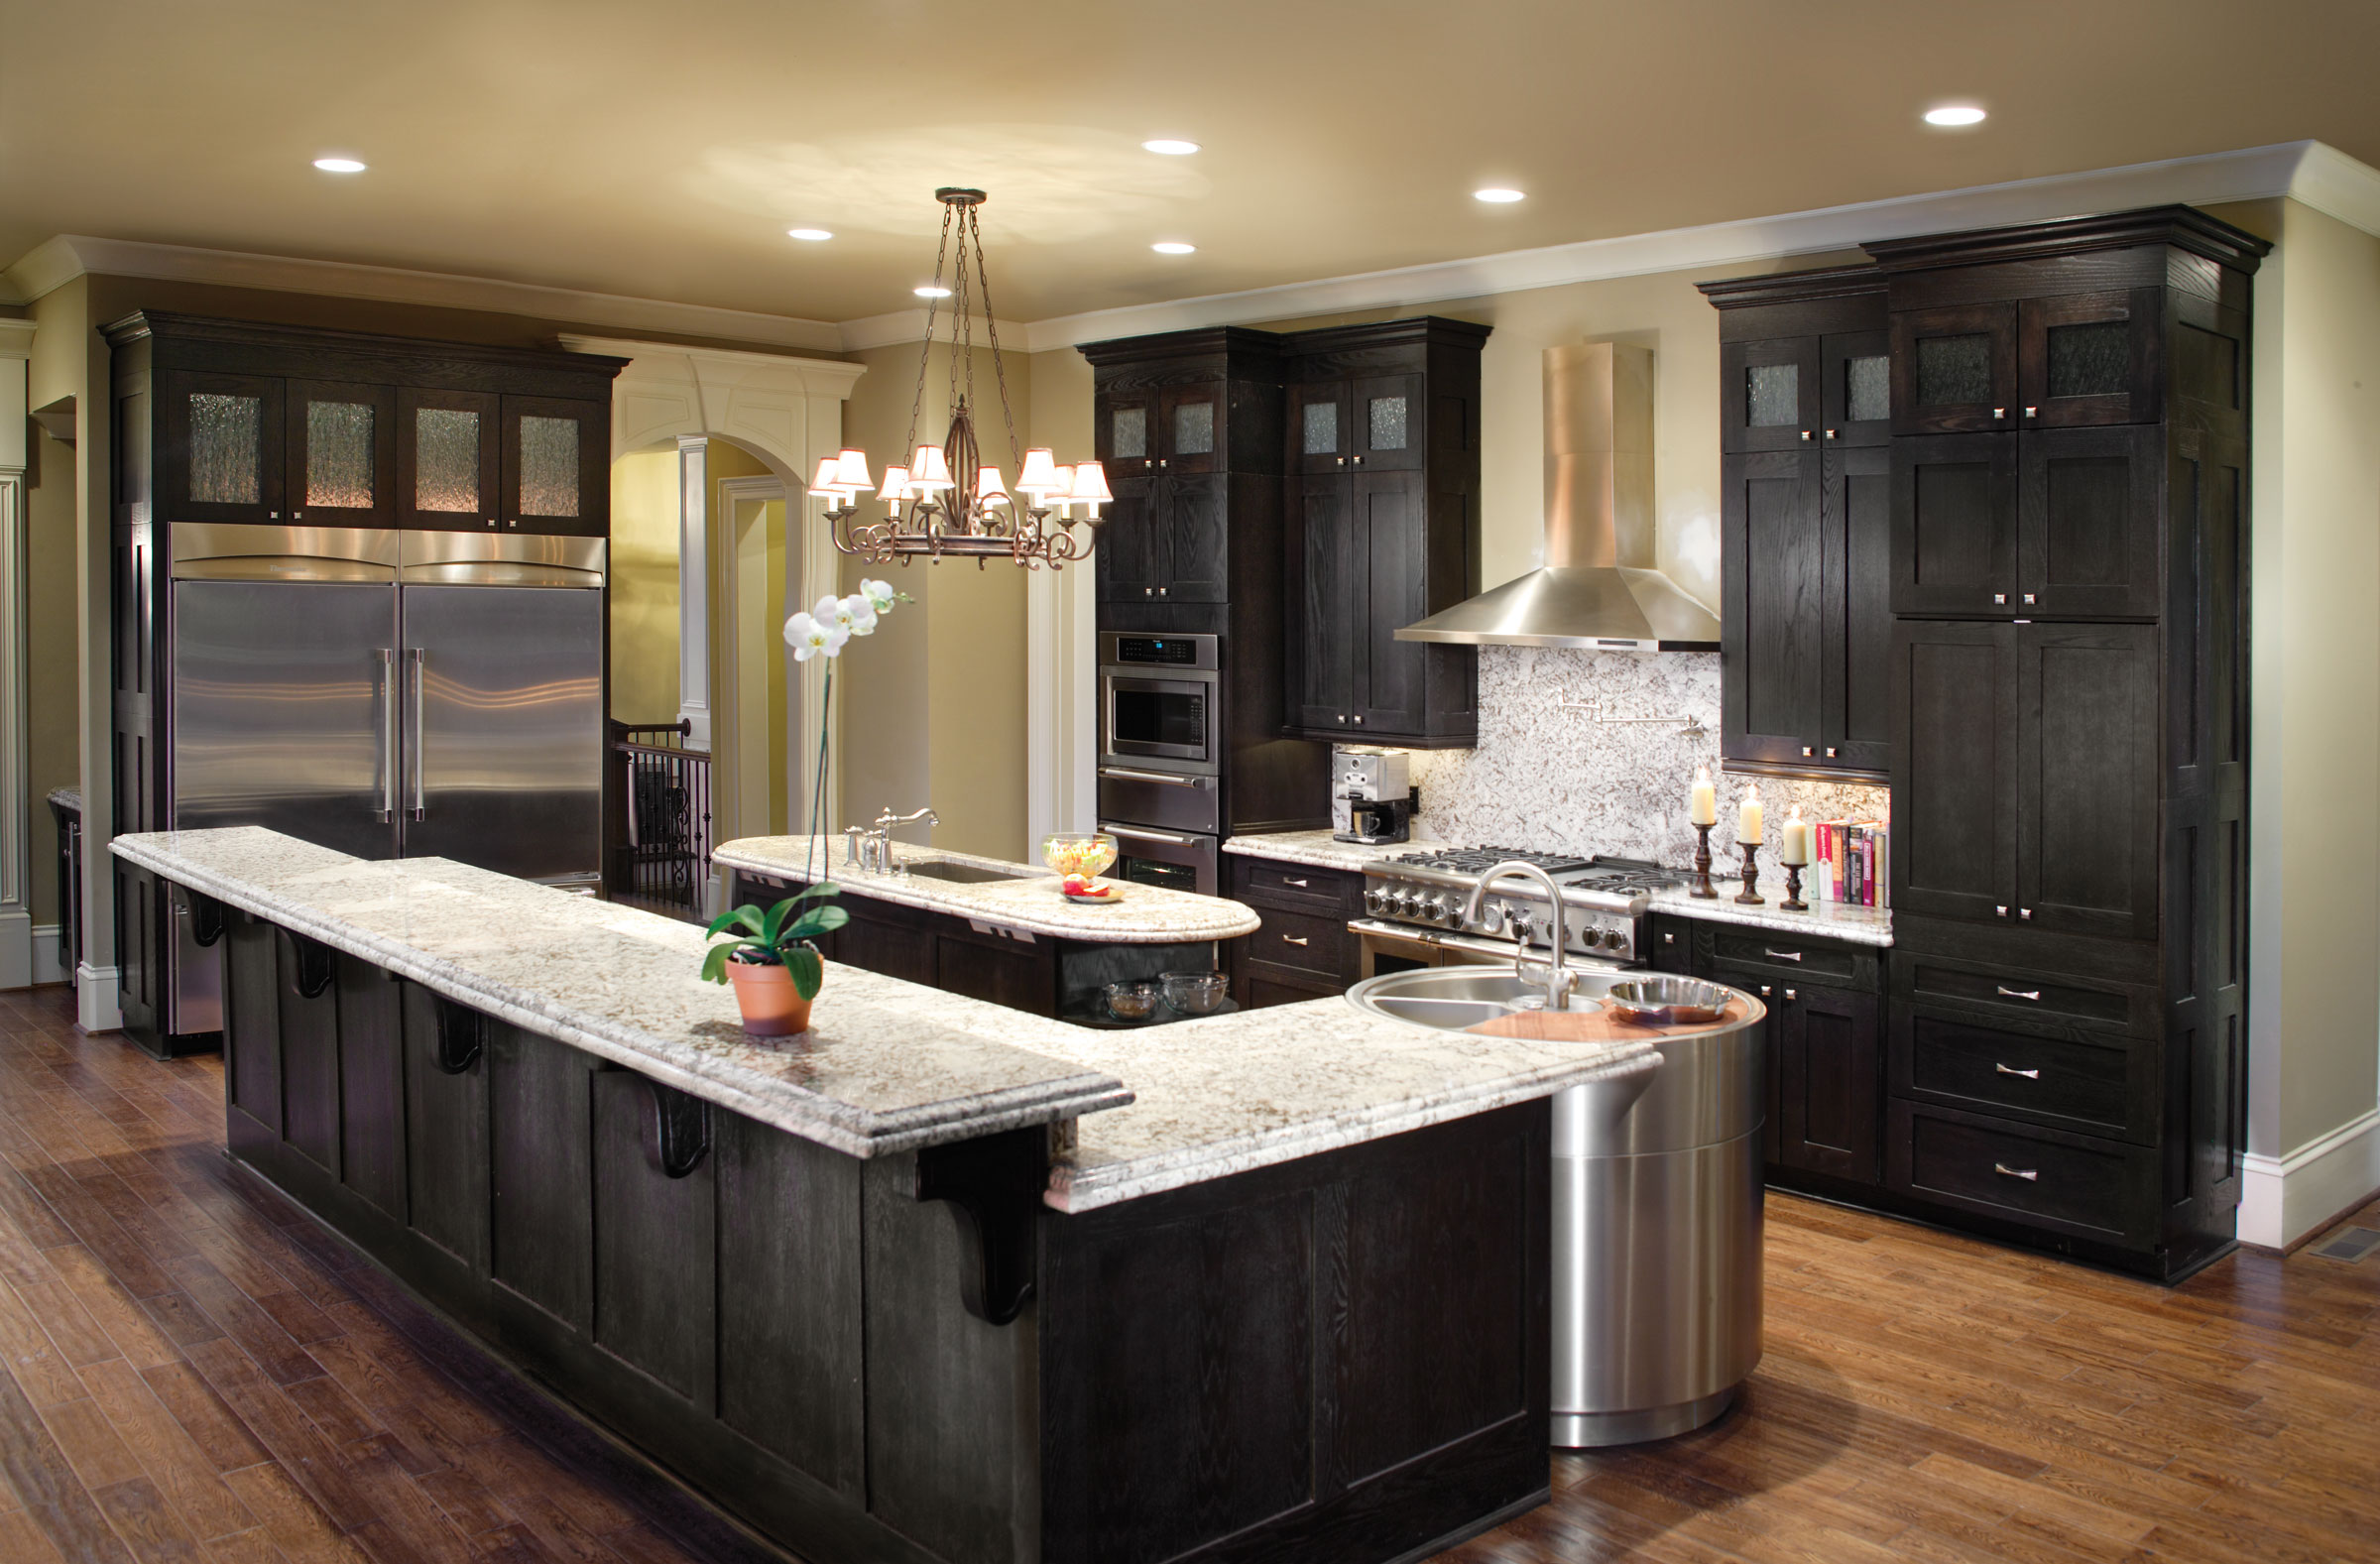 Custom bathroom kitchen cabinets phoenix cabinets by for Cabinet and countertop design